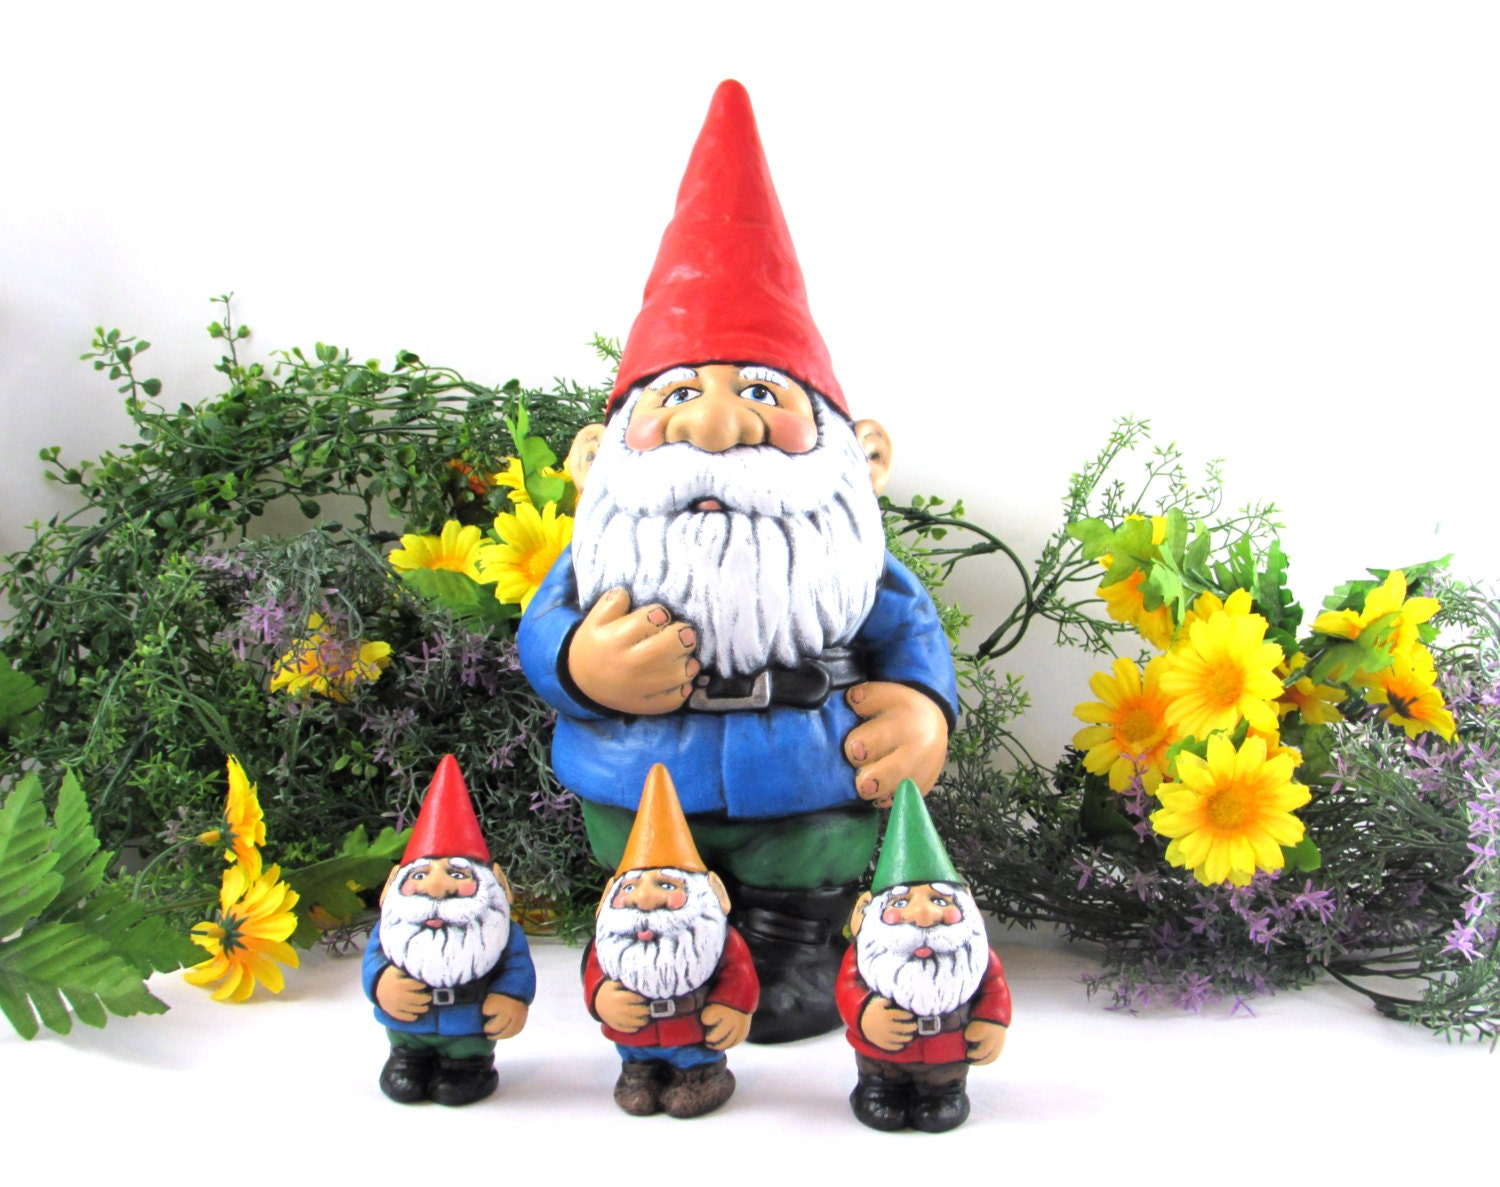 Gnome In Garden: Garden Gnome Set Ceramic Hand Painted One Large Gnome And